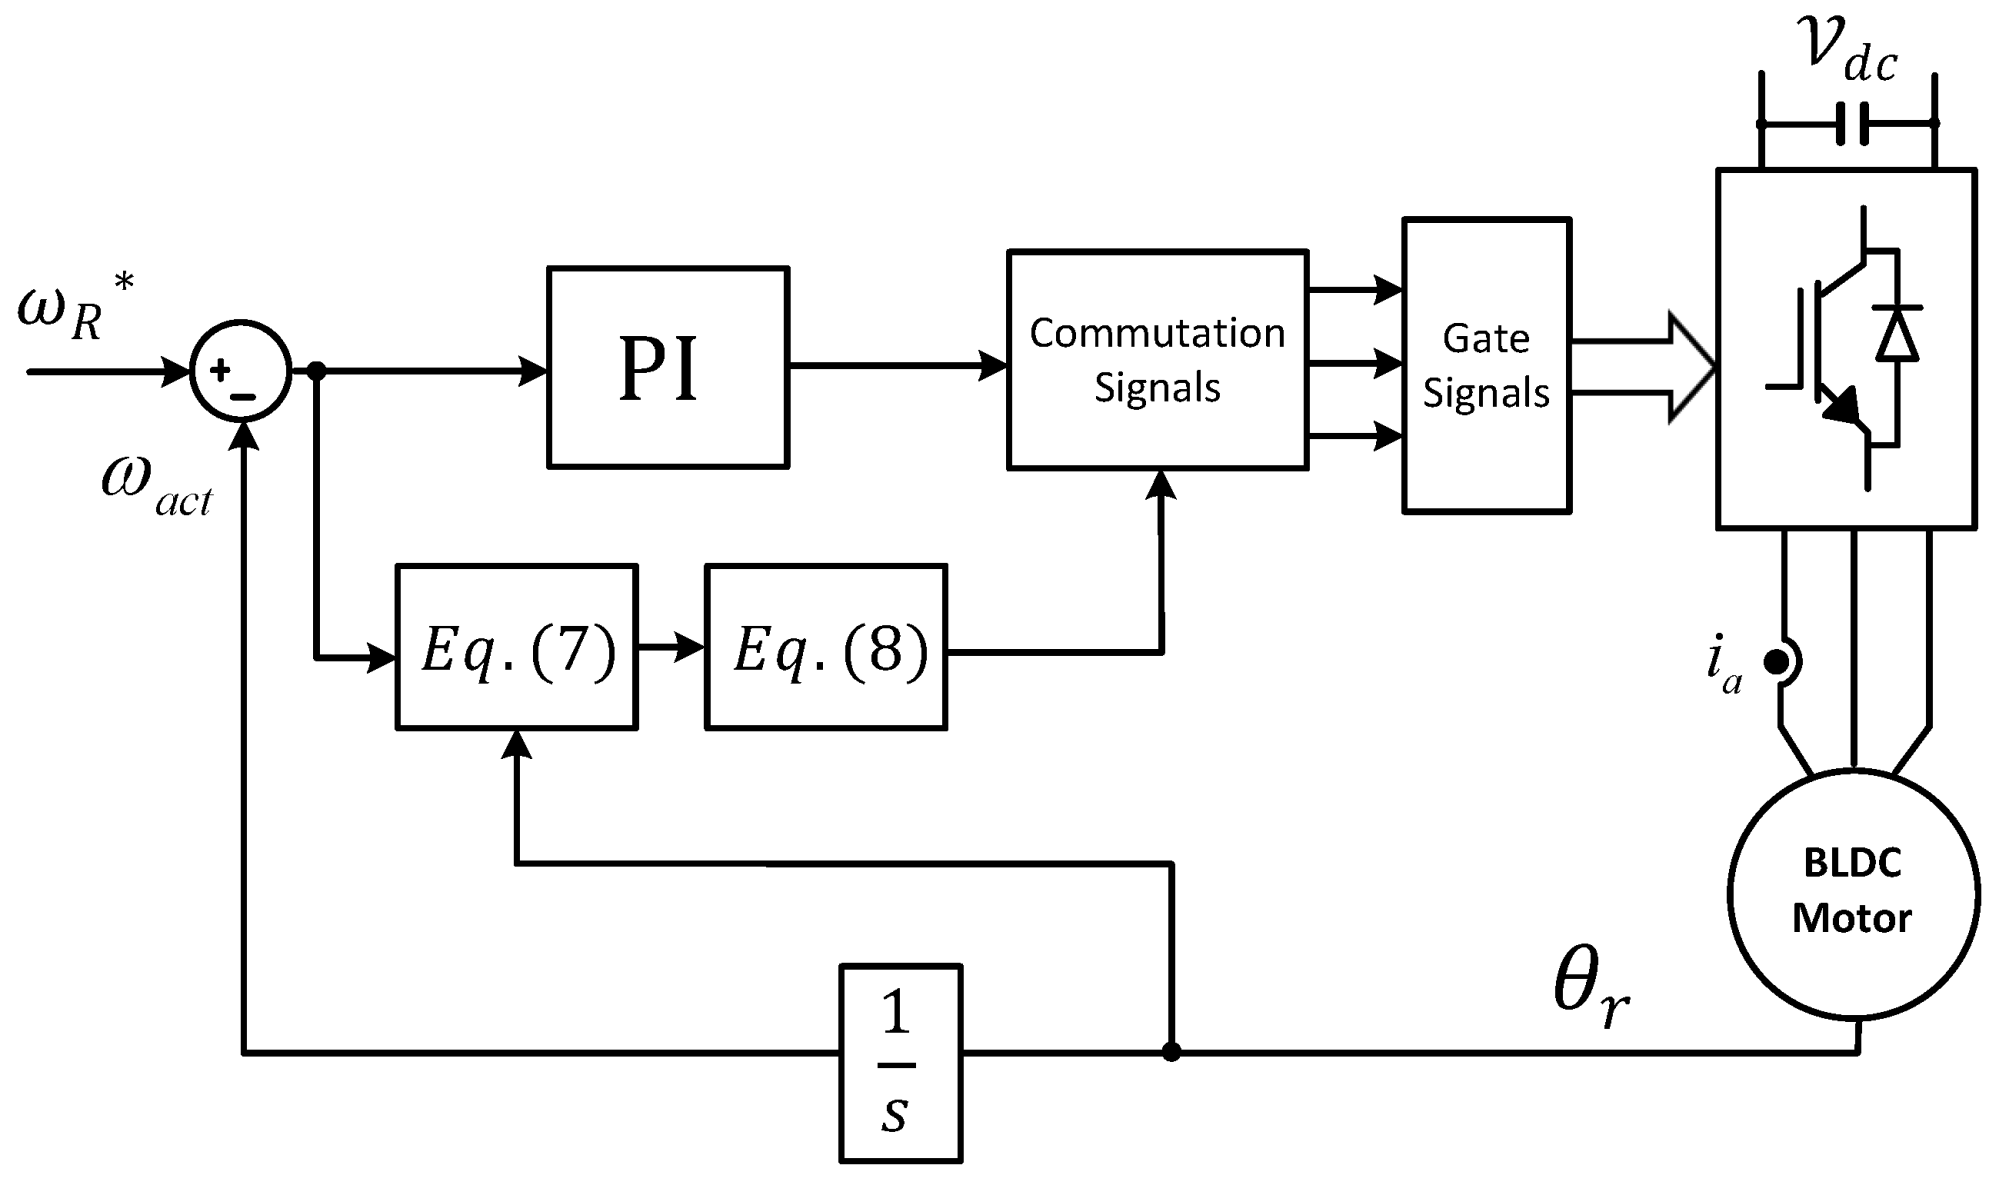 hight resolution of energies free full text on field weakening performance of a graphic equalizer circuit diagram moreover brushless motor diagram